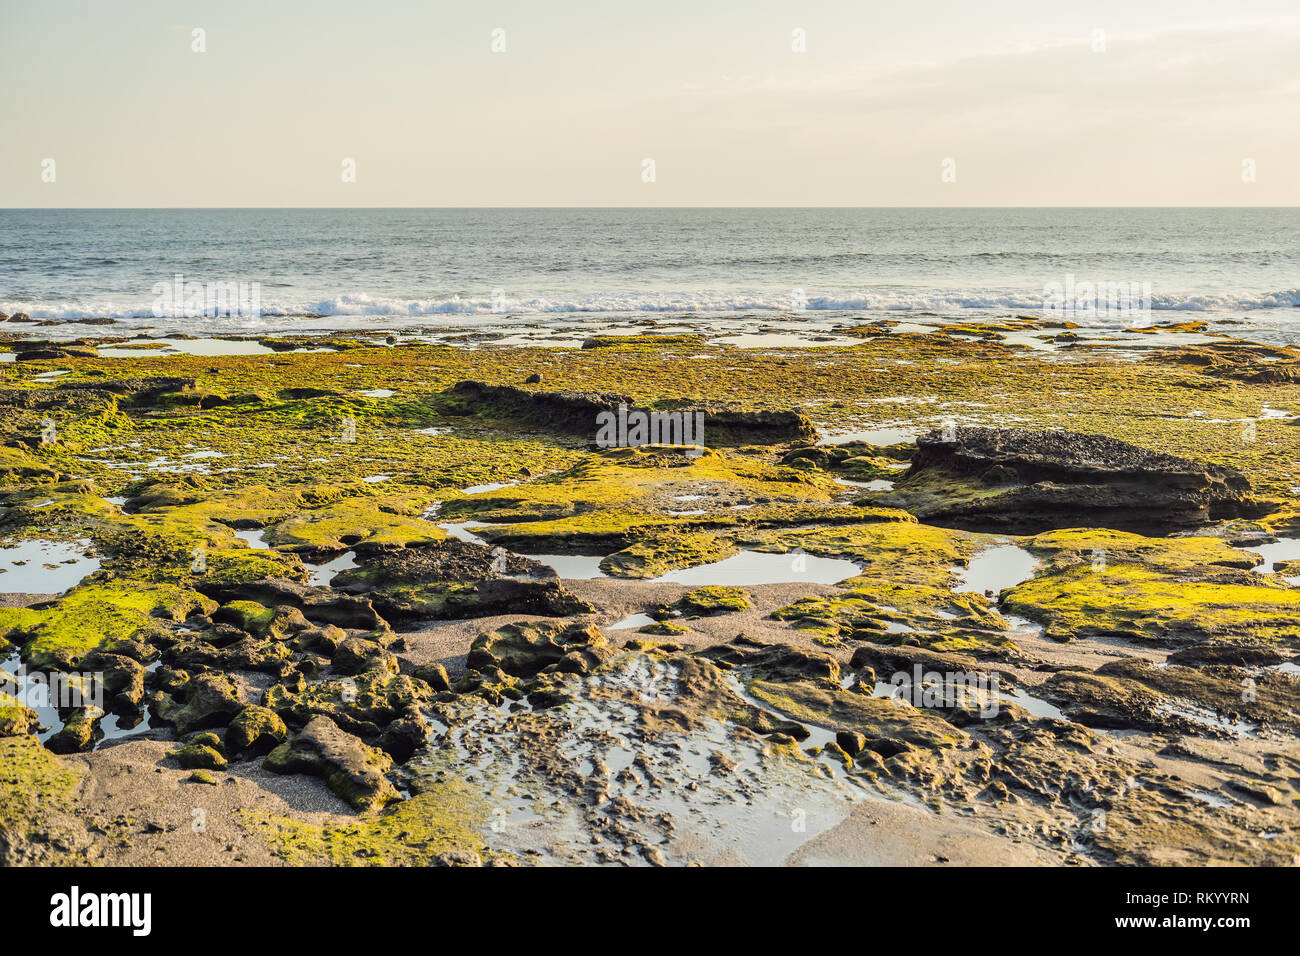 Sea tide on the moss-covered rocky beach, Bali, Indonesia Stock Photo